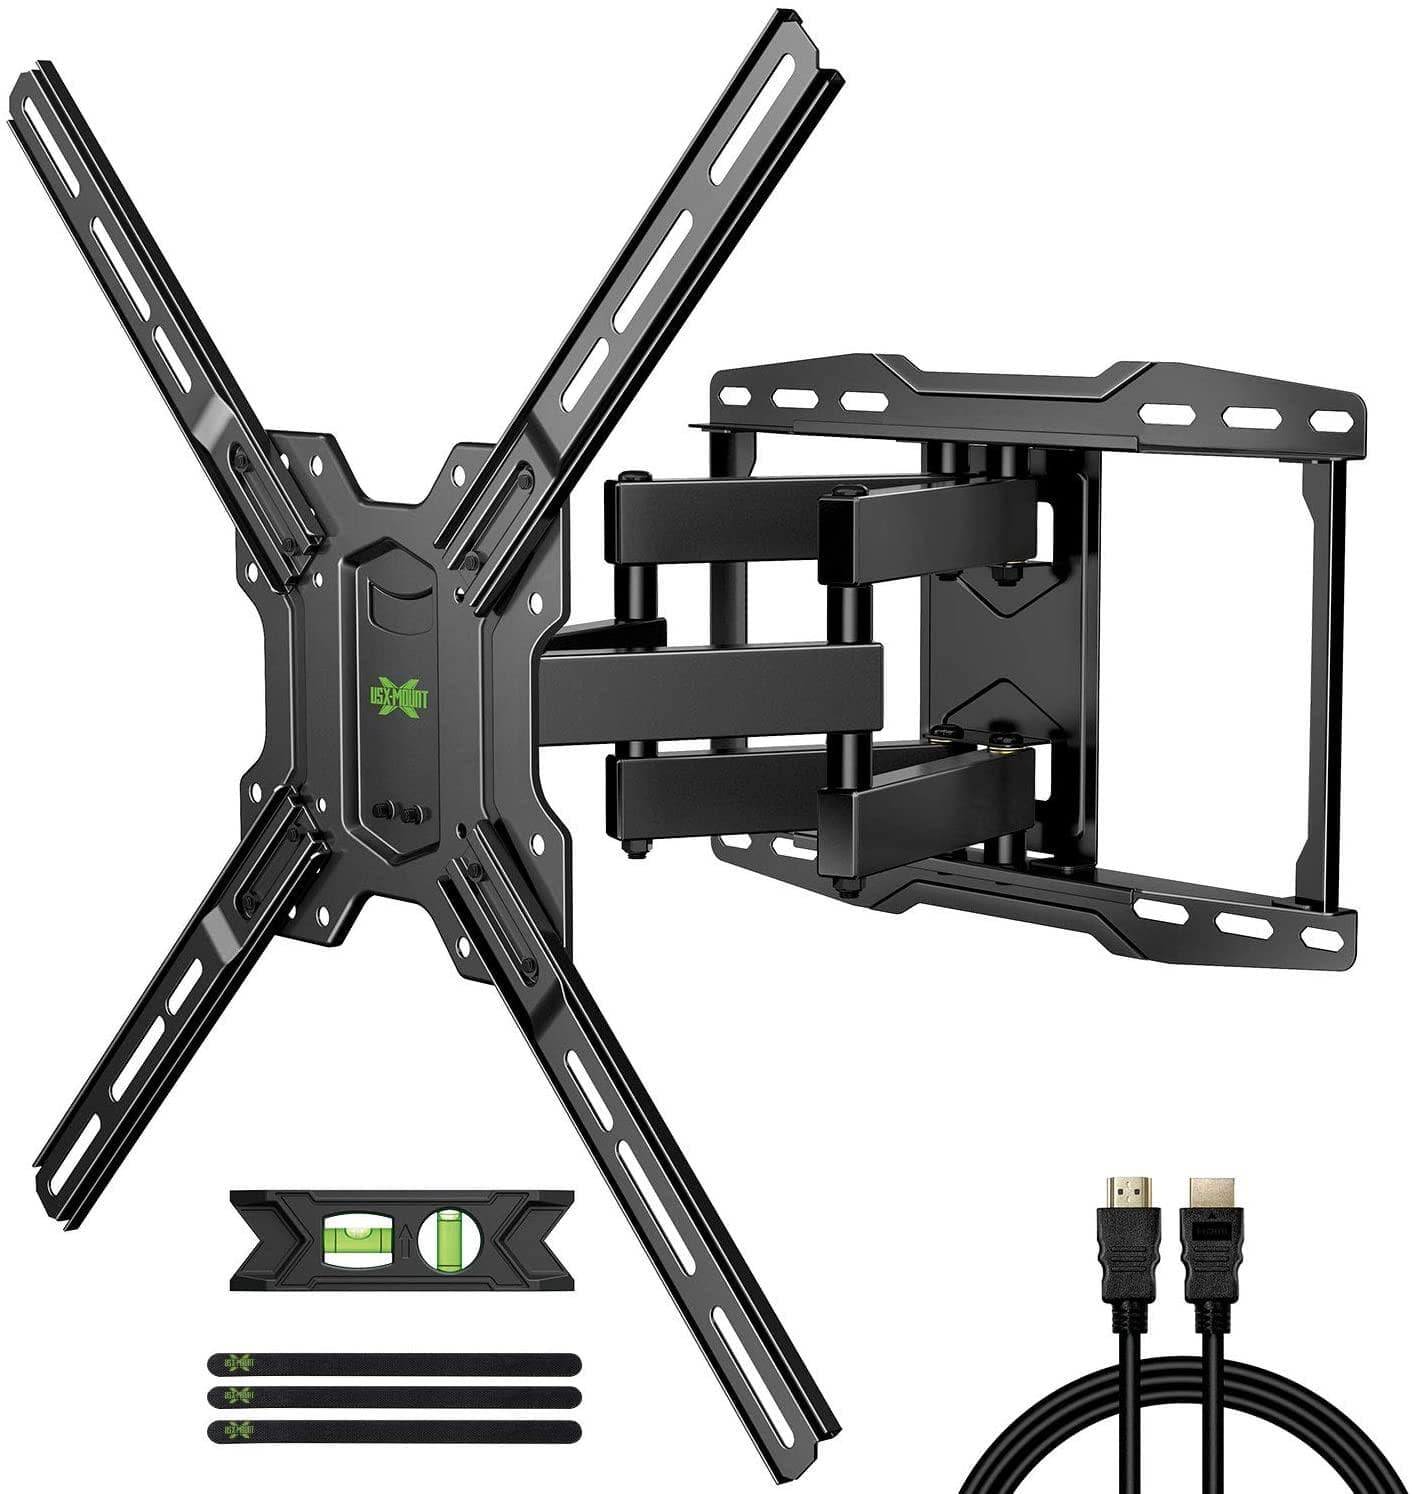 """USX MOUNT Full Motion TV Wall Mount (for 42-75"""" TVs Max VESA 600x400mm) for $19.49 + Shipping is Free"""